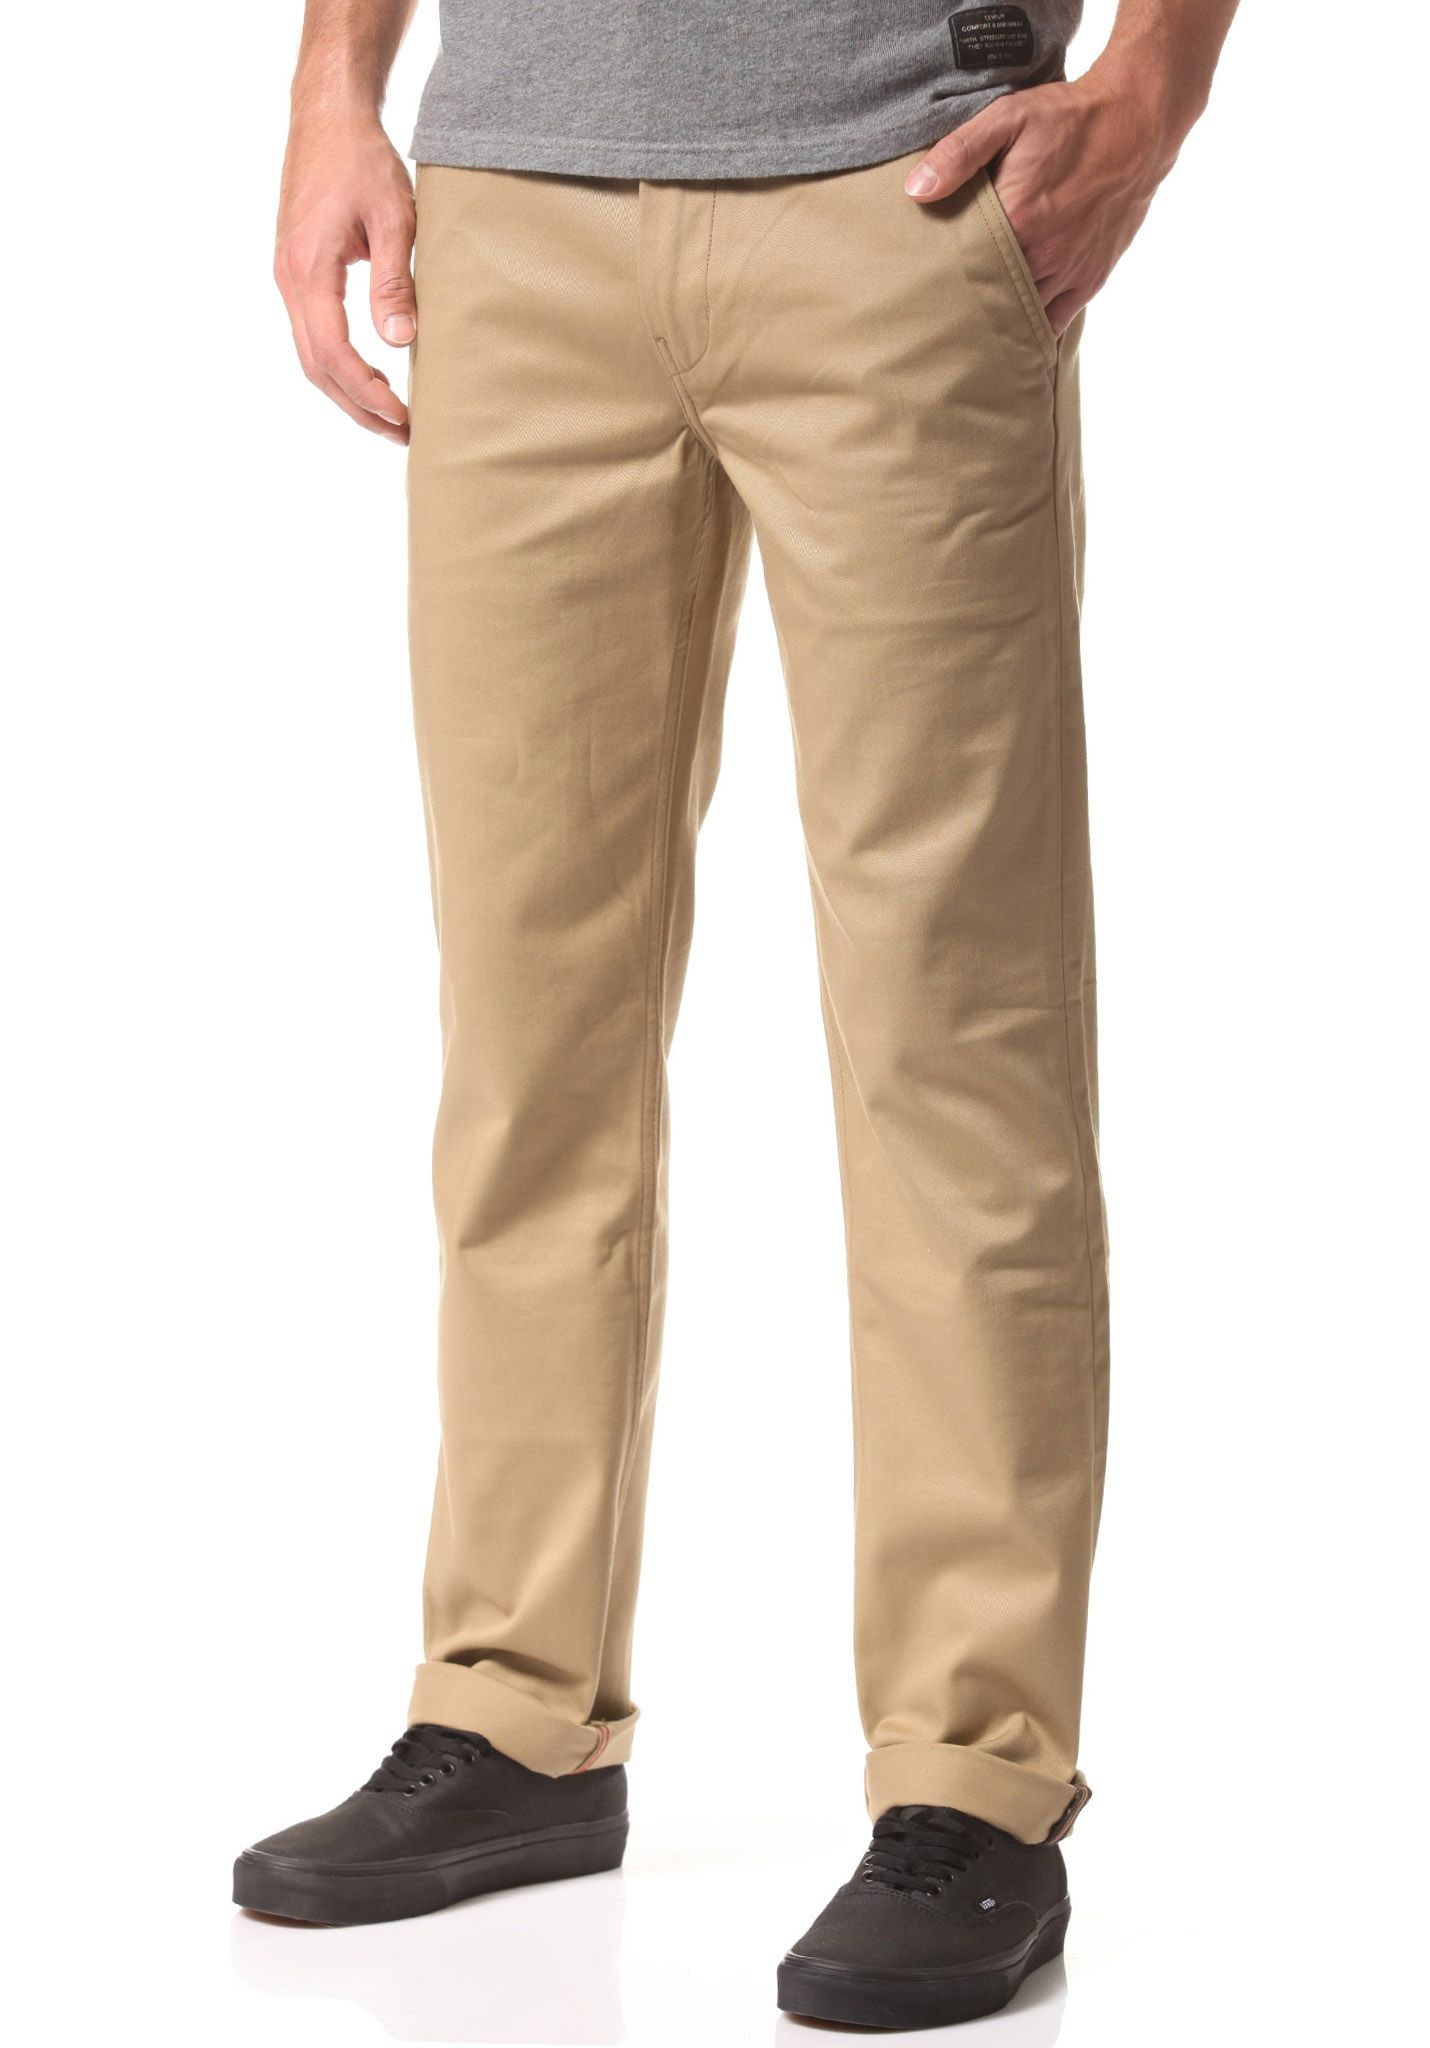 reputable site best well known Levi's Skate Work SE - Trousers for Men - Beige